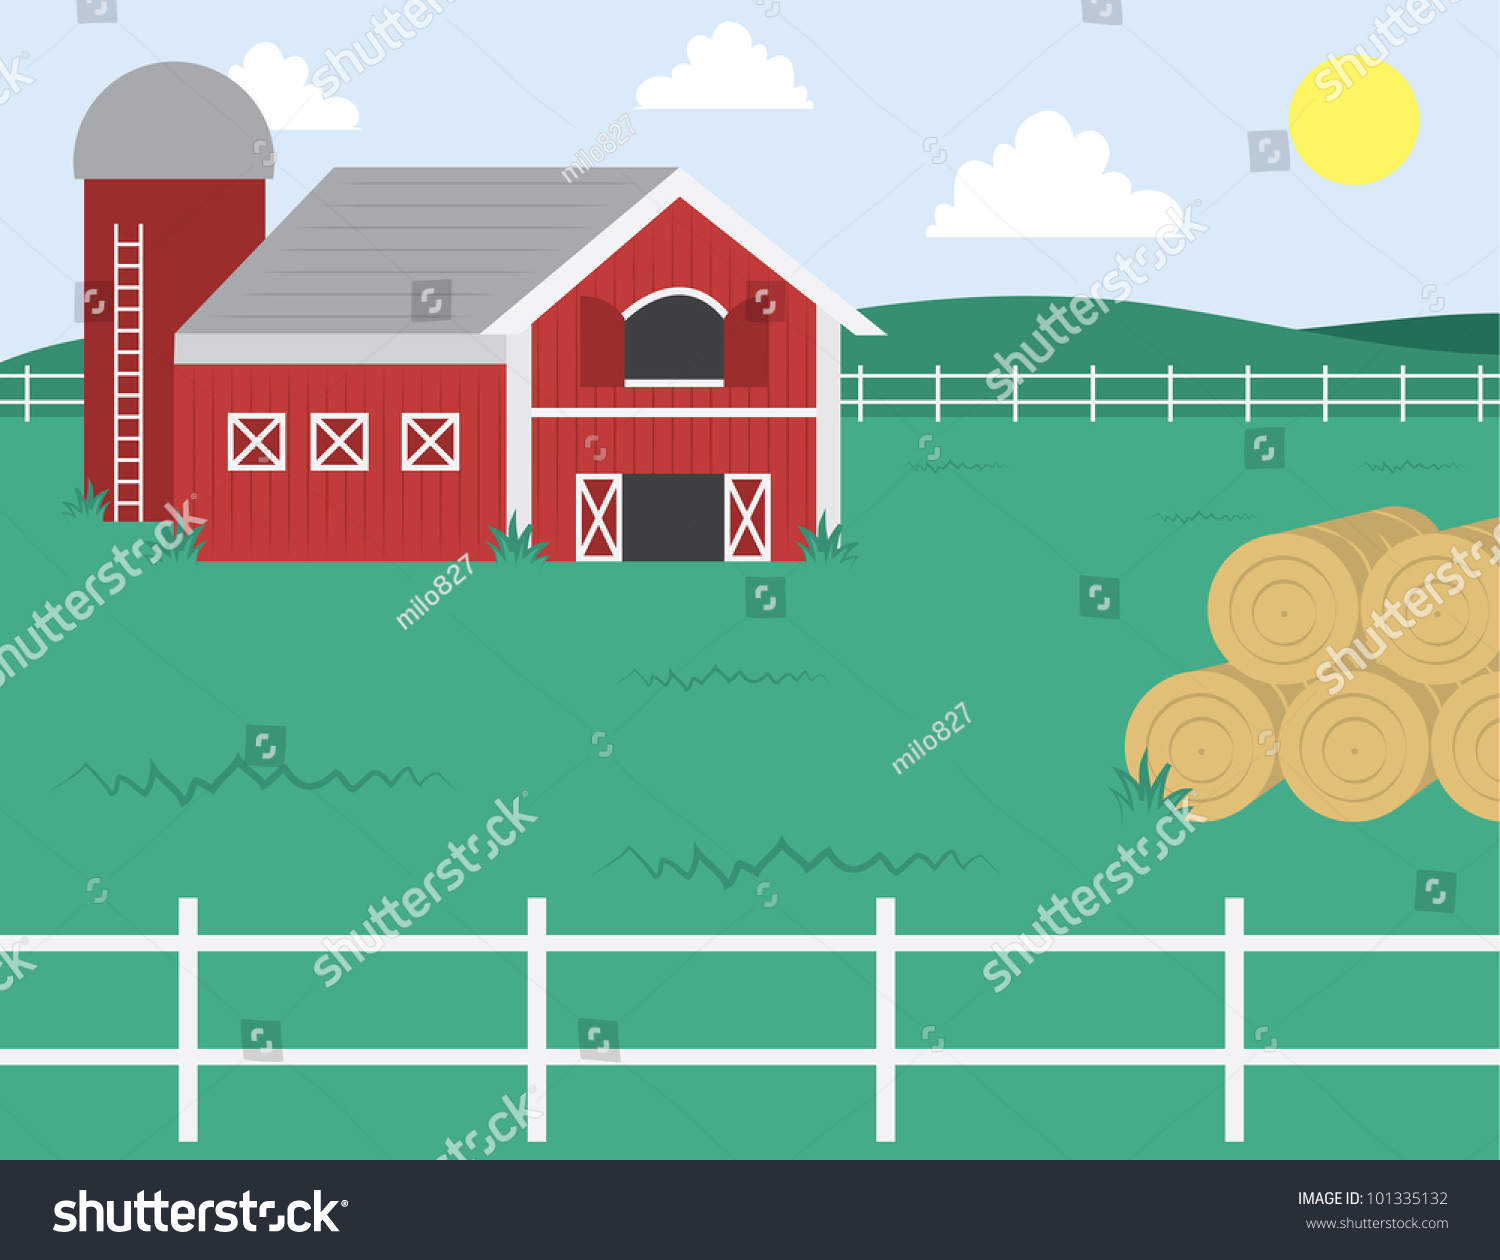 many farms mature dating site Date over 60 is part of the online connections dating network, which includes many other general and senior dating sites as a member of date over 60.